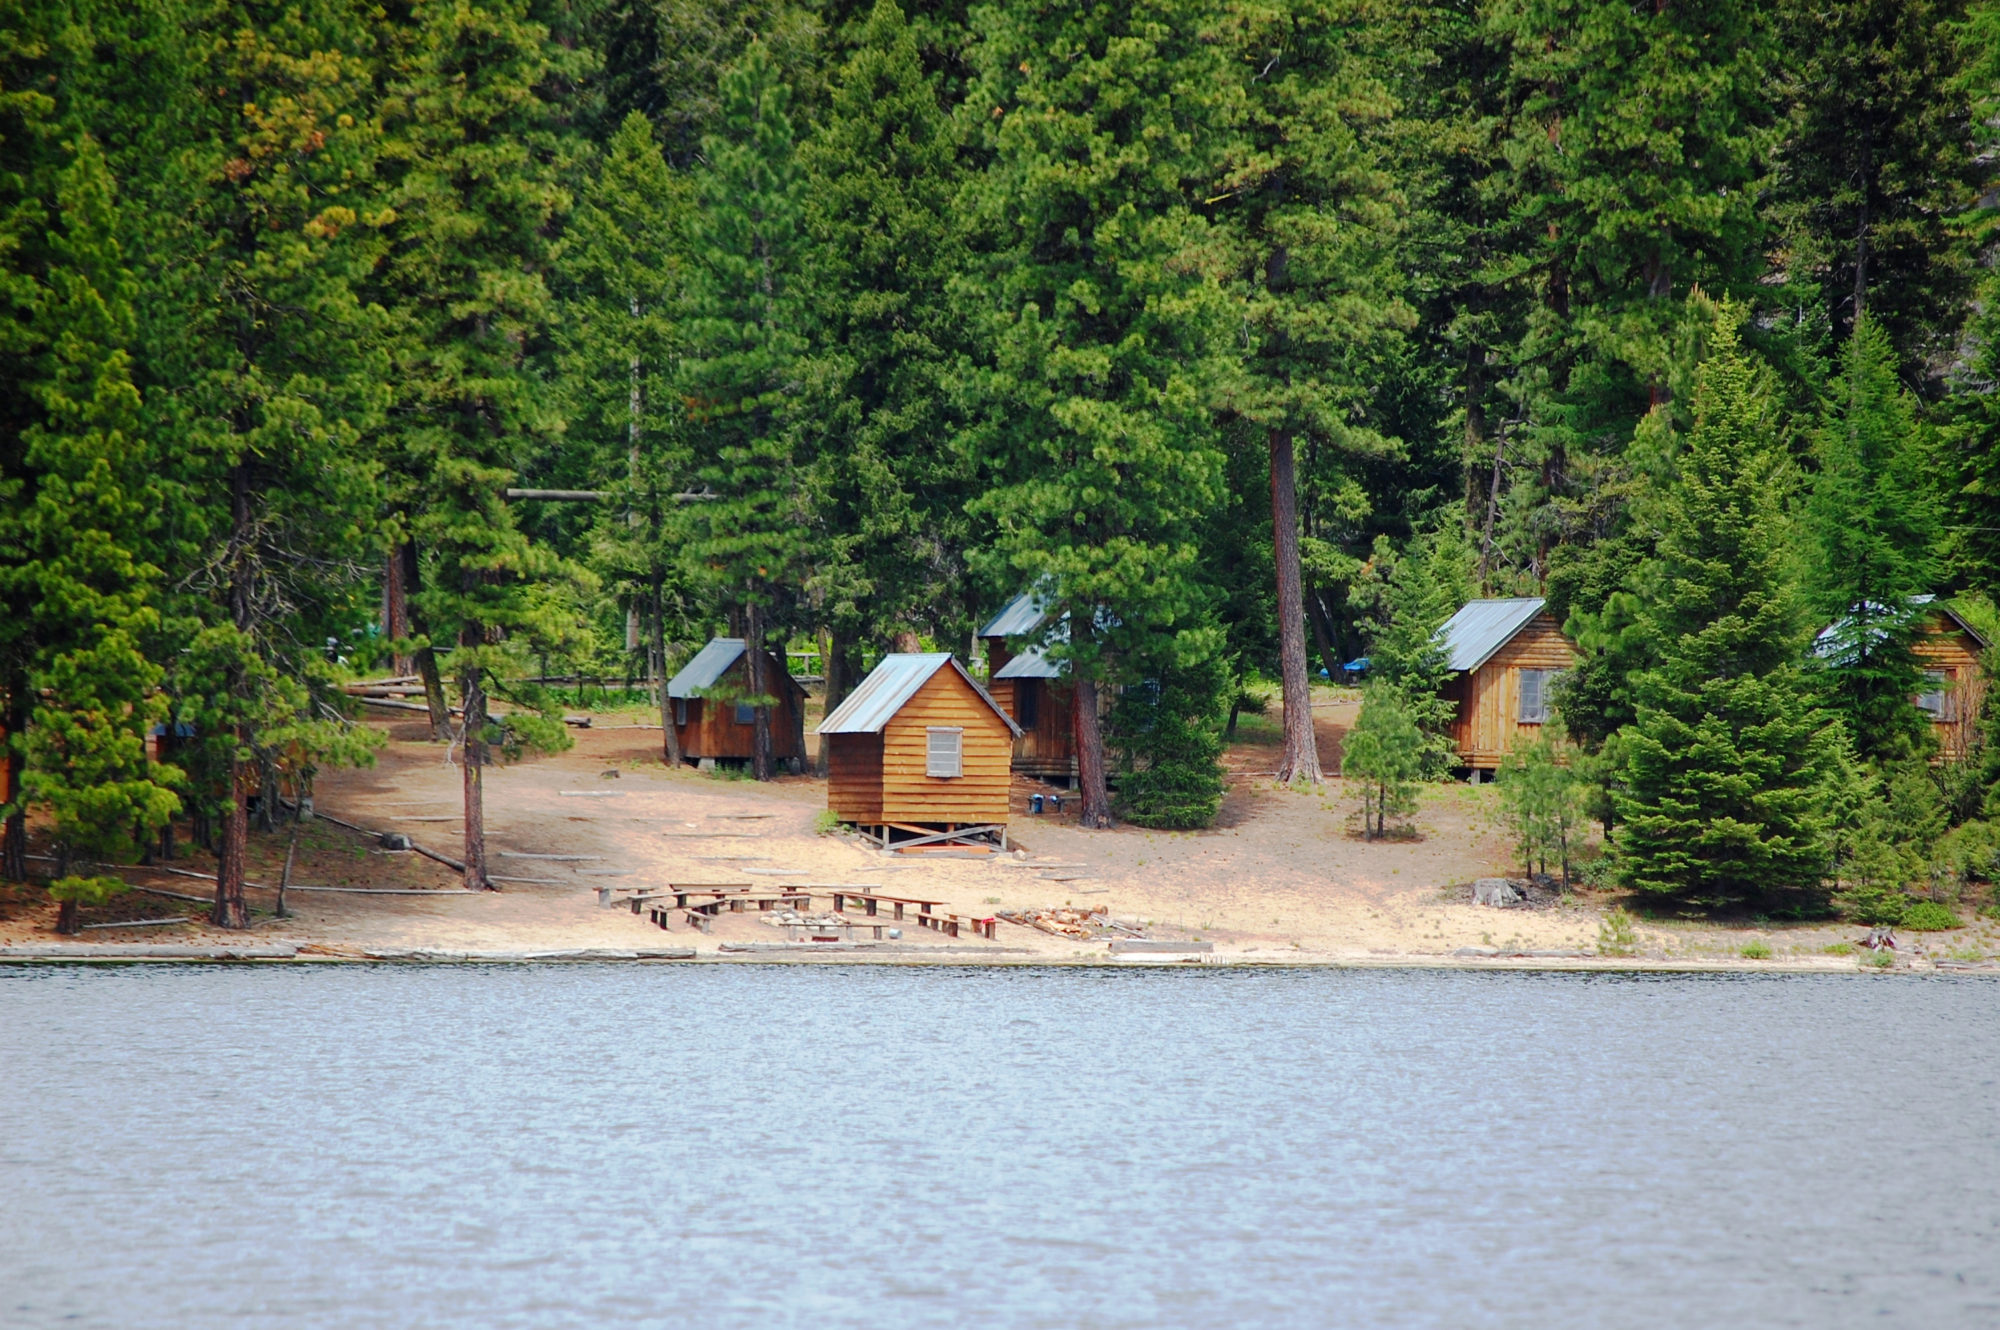 How Camp Owners Can Prevent Liability and Lawsuits